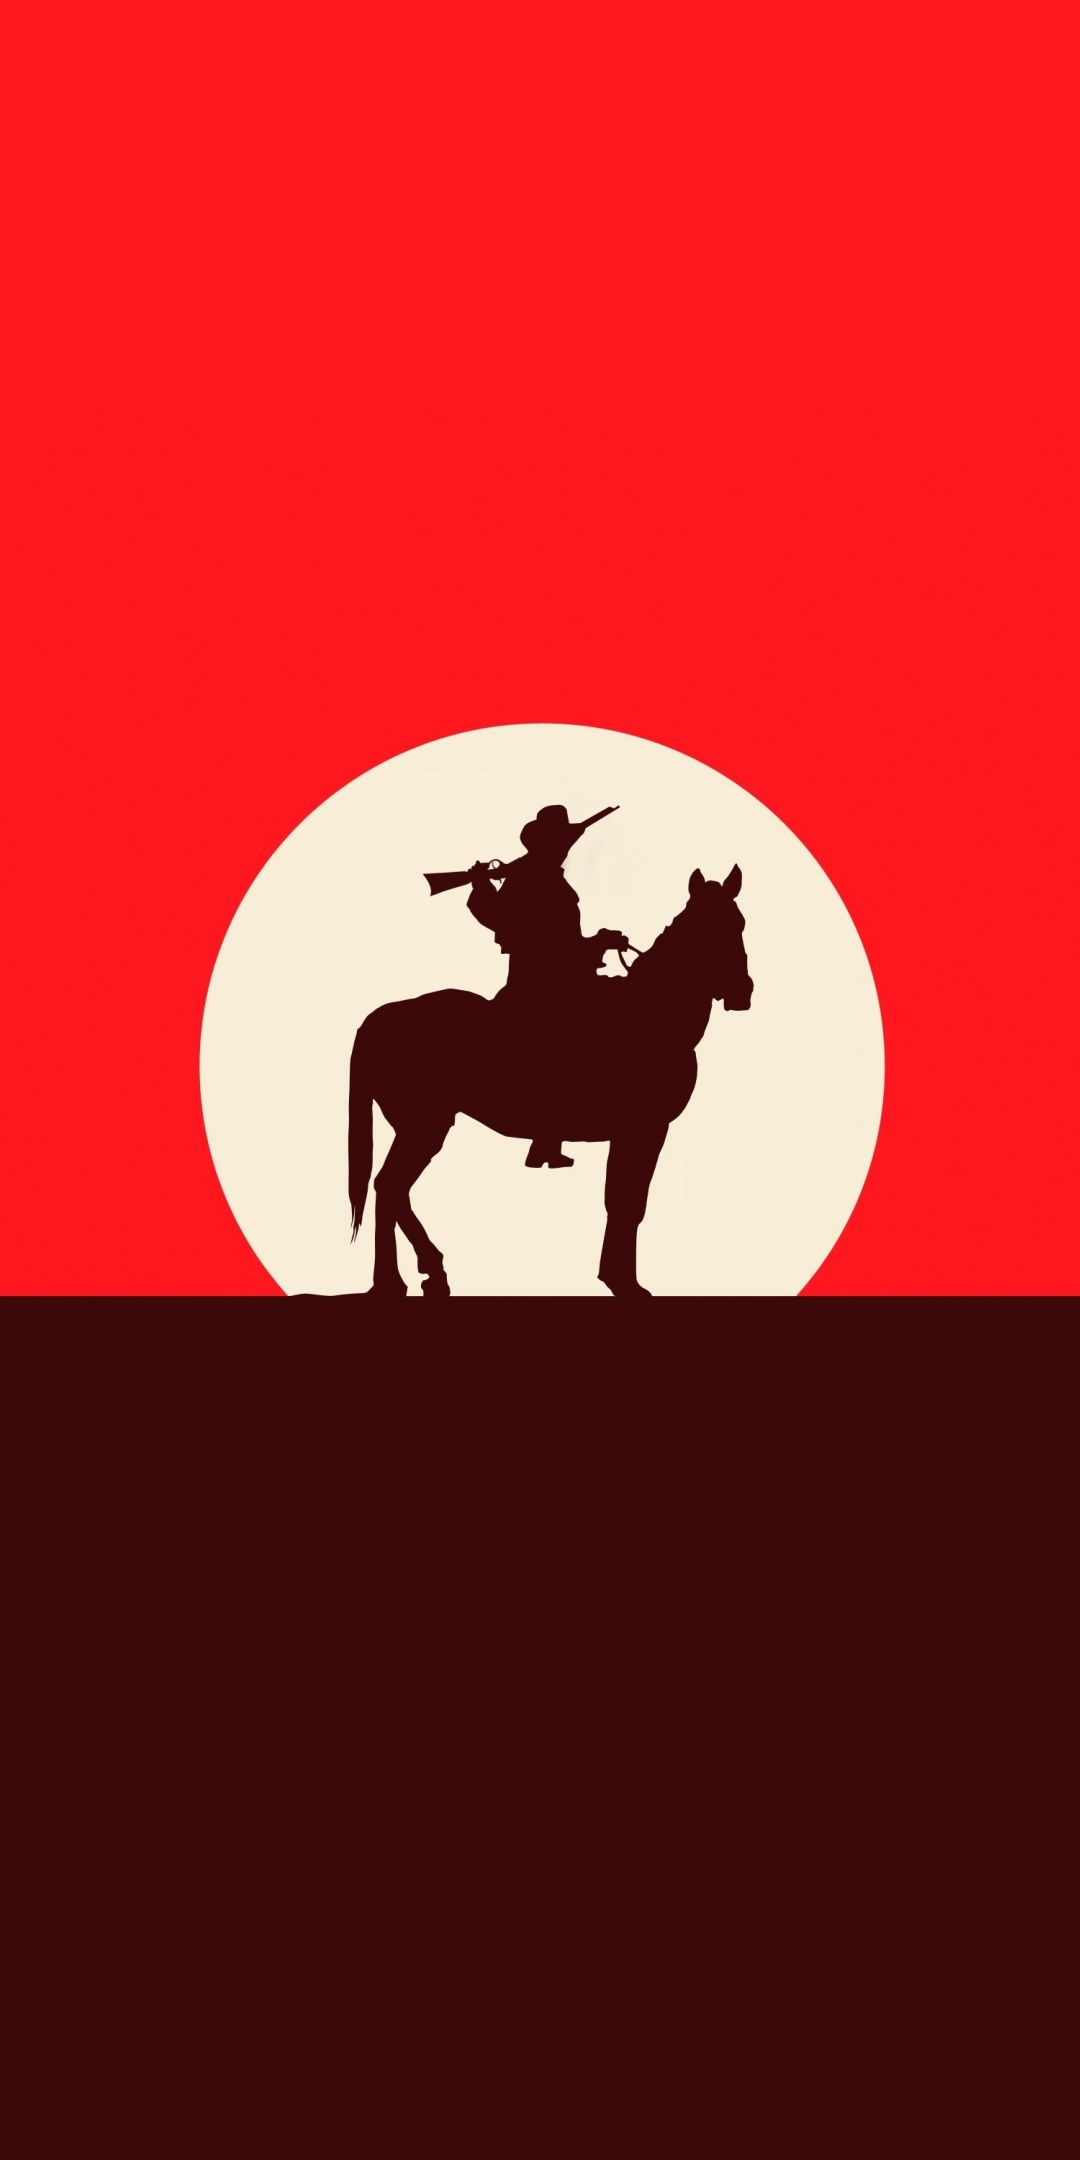 Red Dead Redemption 2 Sunset Silhouette 2018 Game Cowboy 1080x2160 Wallpaper Red Dead Redemption Artwork Red Dead Redemption Iphone Wallpaper Pattern